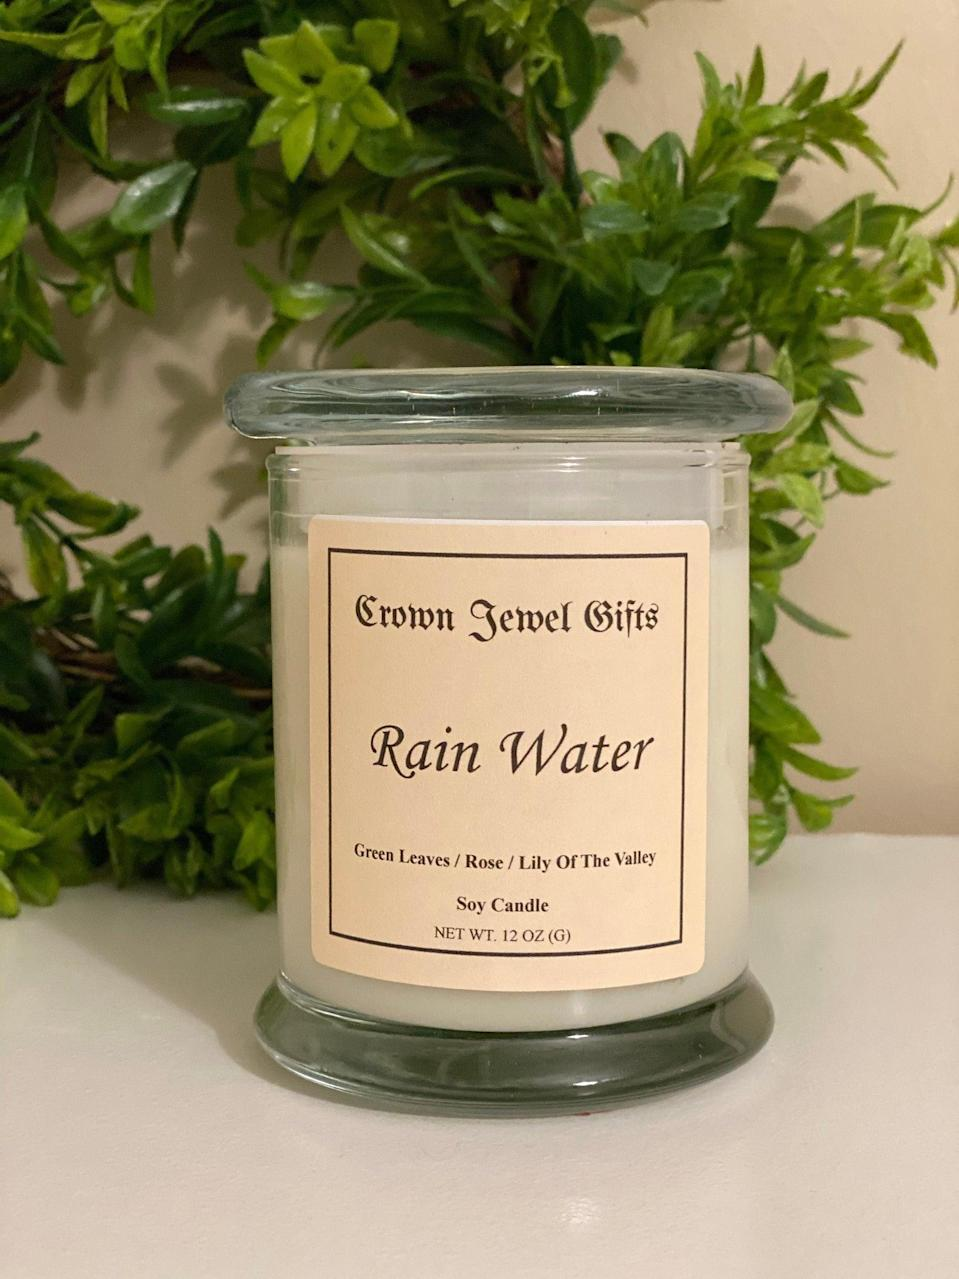 "<h2>Rain Water Scented Candle</h2><br>Set the seasonal mood and embrace the romance of a rainy afternoon with this fresh, scented candle. <br><br><em>Shop <strong><a href=""https://www.etsy.com/shop/CrownJewelGifts"" rel=""nofollow noopener"" target=""_blank"" data-ylk=""slk:Crown Jewel Gifts"" class=""link rapid-noclick-resp"">Crown Jewel Gifts</a></strong></em><br><br><strong>CrownJewelGifts</strong> Rain Water Scented Candle, $, available at <a href=""https://go.skimresources.com/?id=30283X879131&url=https%3A%2F%2Fwww.etsy.com%2Flisting%2F790645129%2Frain-water"" rel=""nofollow noopener"" target=""_blank"" data-ylk=""slk:Etsy"" class=""link rapid-noclick-resp"">Etsy</a>"